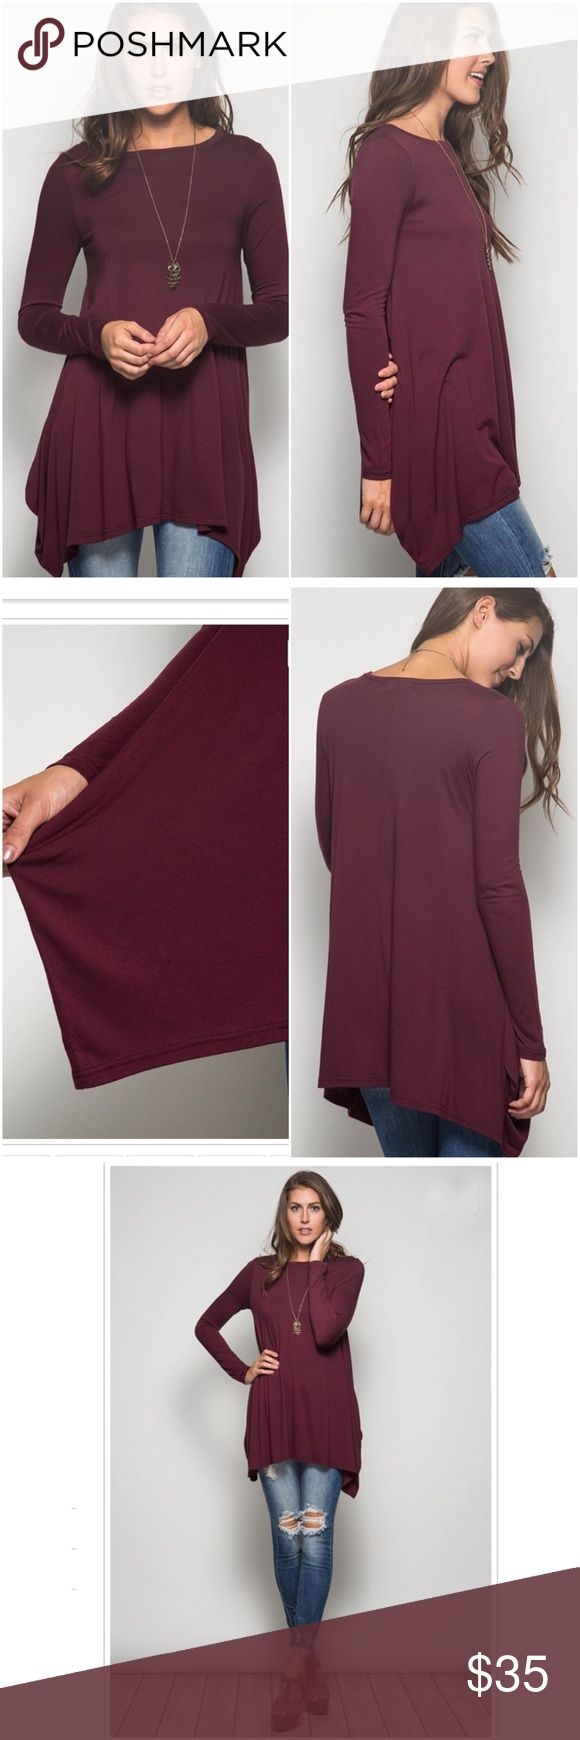 ⭐️$3.95 SHIP!⭐️NWT Burgundy/Wine Long Tunic Top NWT Burgundy/Wine Long Sleeved Tunic Top. The perfect versatile top for fall and winter! A rich burgundy color and flattering fit. Tunic length with longer cut sides. Fabric is Cotton/Rayon blend. Fits true to size, Small (0-4), Medium (6-8), Large (10-12). No Trades and No PaypalPRICE IS FIRM unless bundled. Also available in black. Tops Tunics